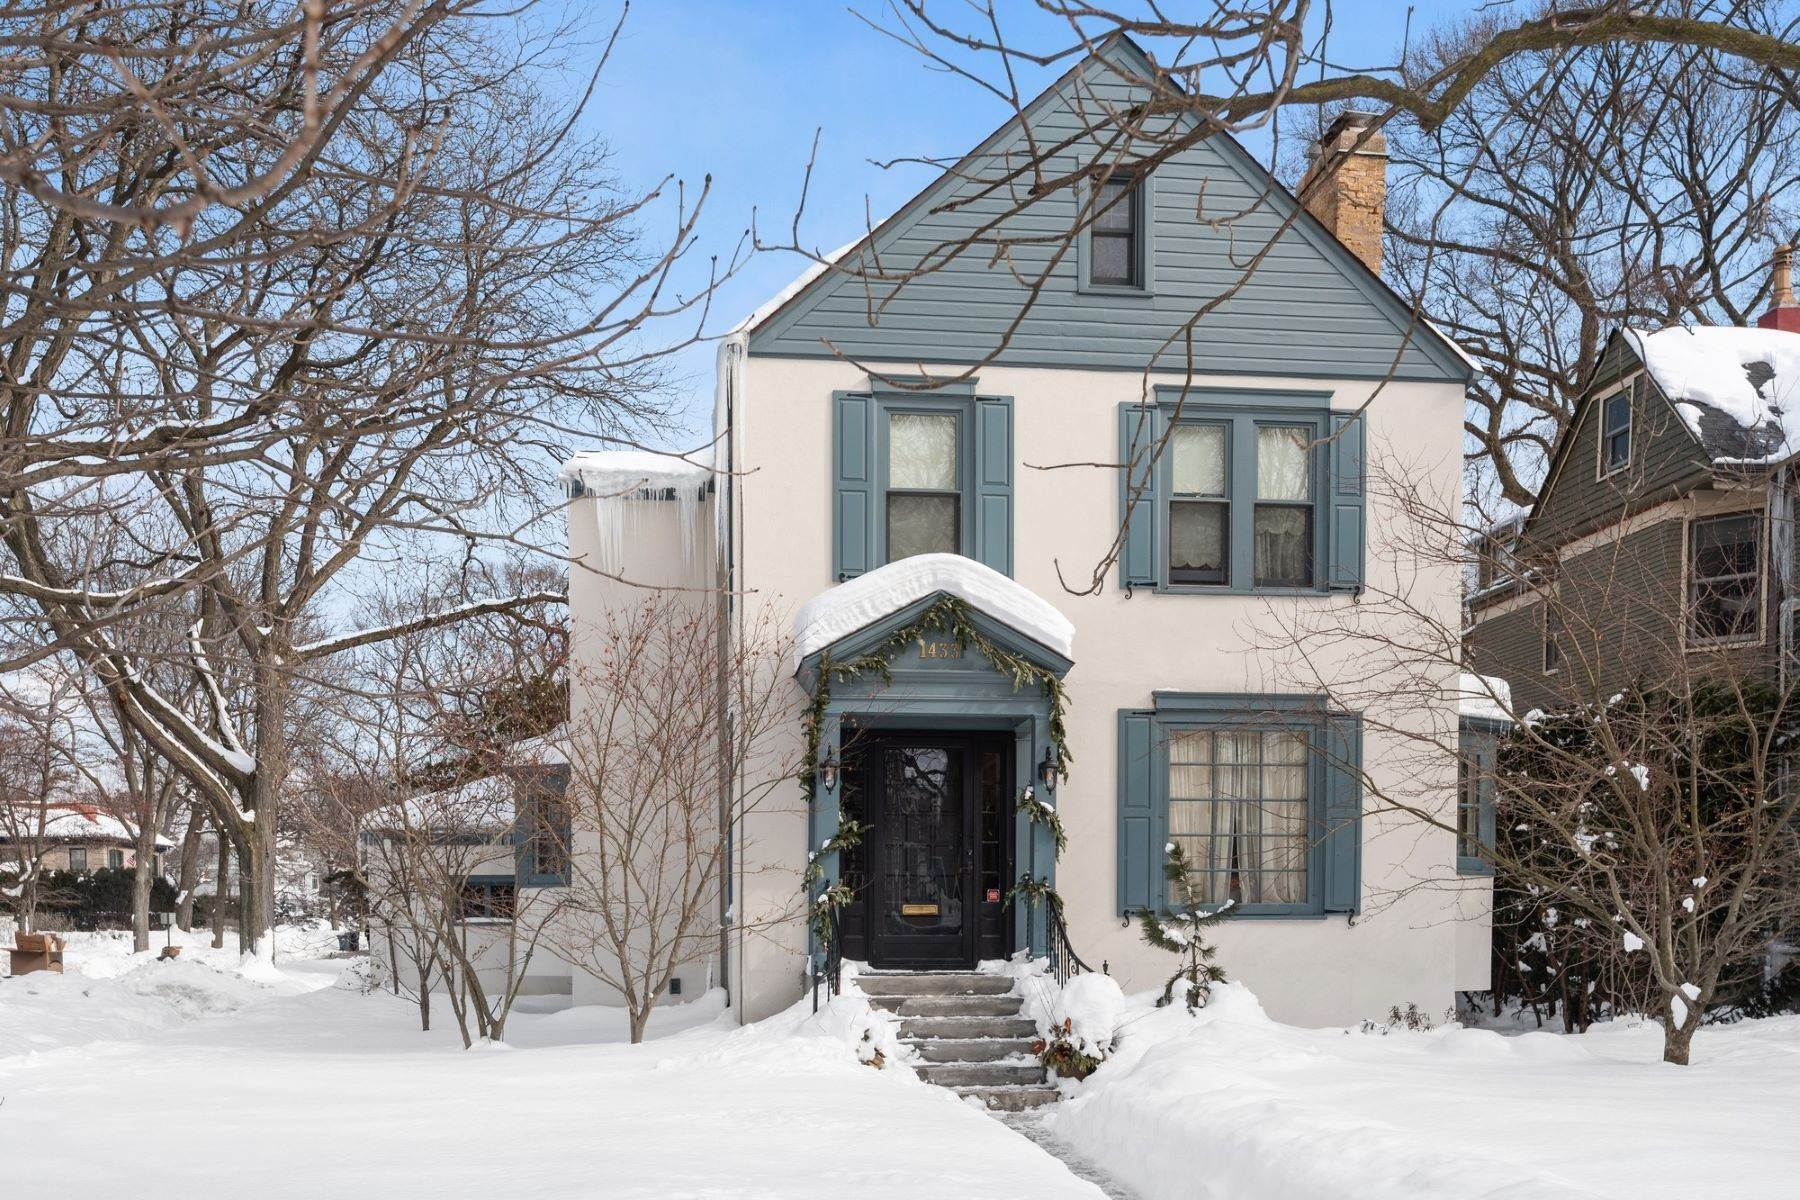 Single Family Homes for Sale at Southeast Evanston Victorian 1433 Judson Avenue Evanston, Illinois 60201 United States